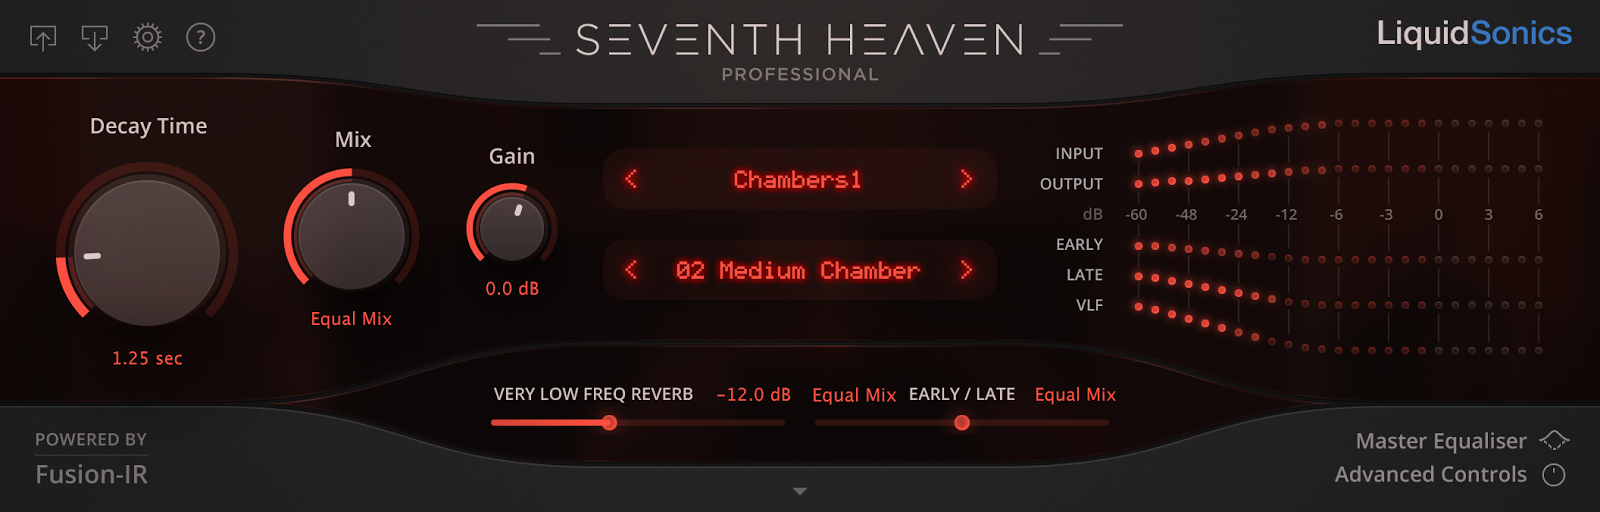 cymatics-best reverb plugins-7th heaven